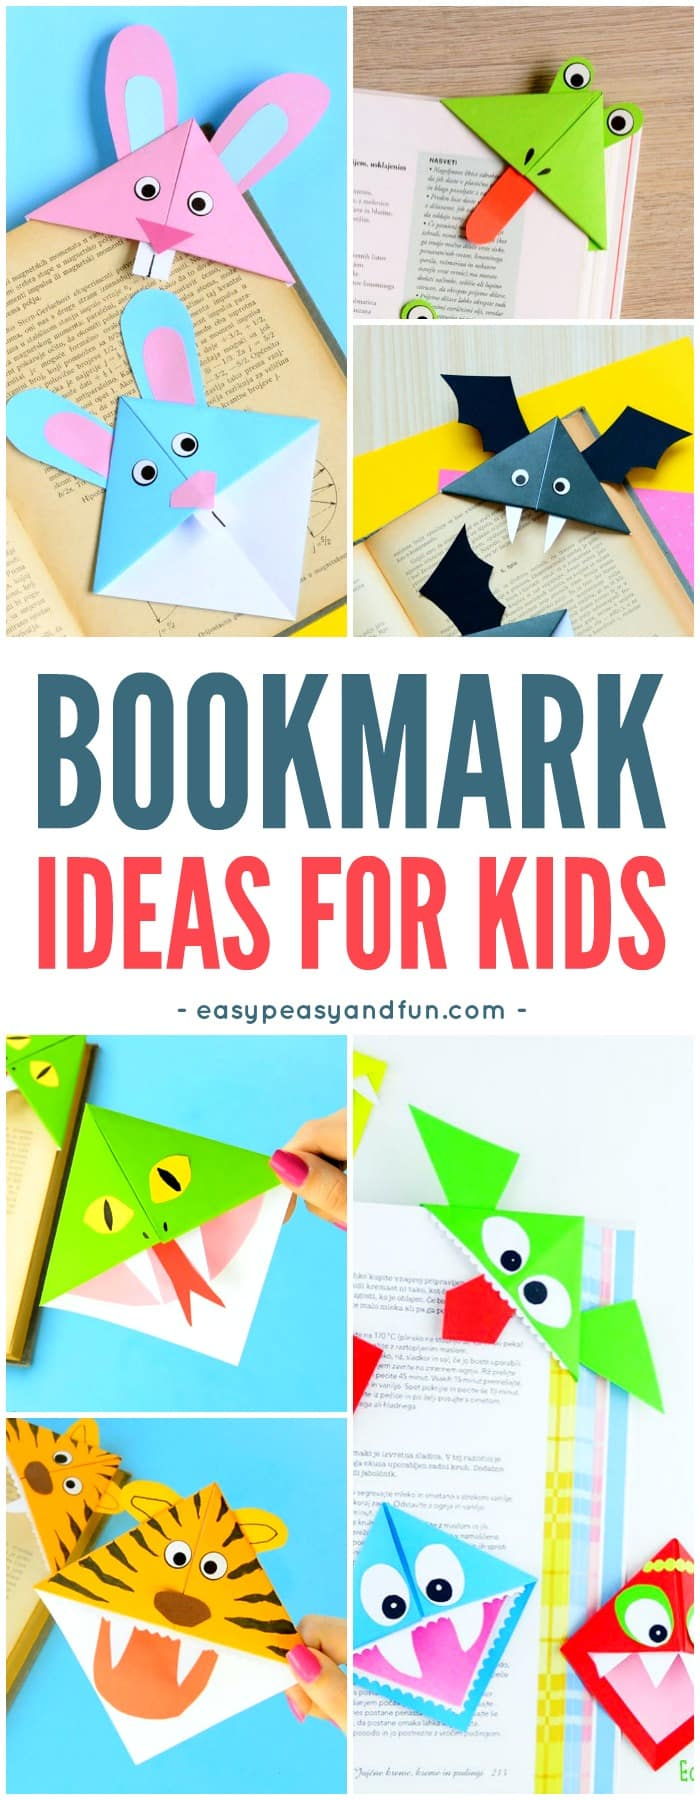 How to Make Corner Bookmarks + Ideas and Designs - Easy Peasy and Fun